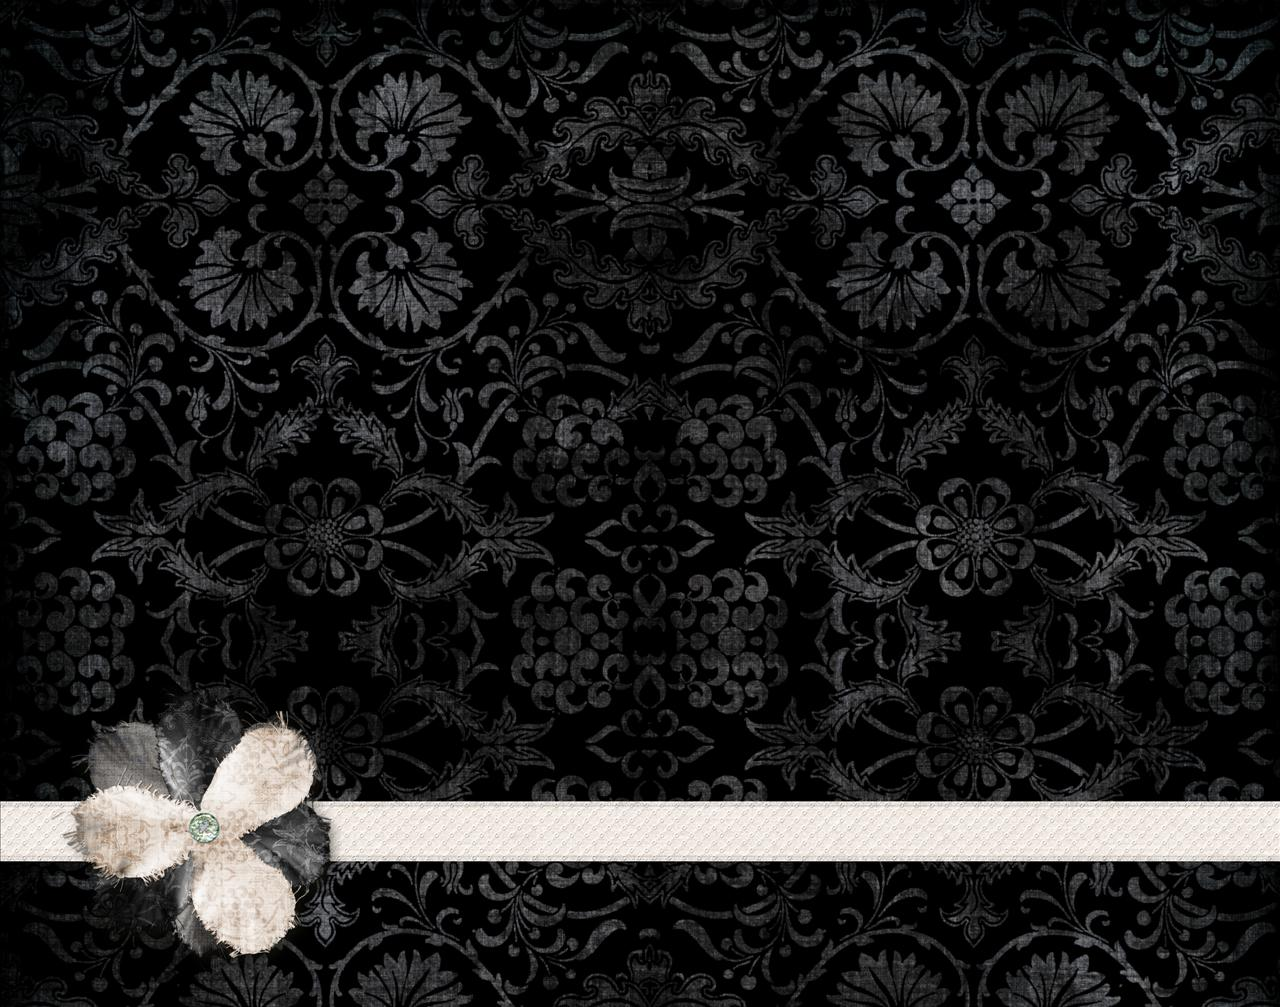 Black with Flowers Backgrounds